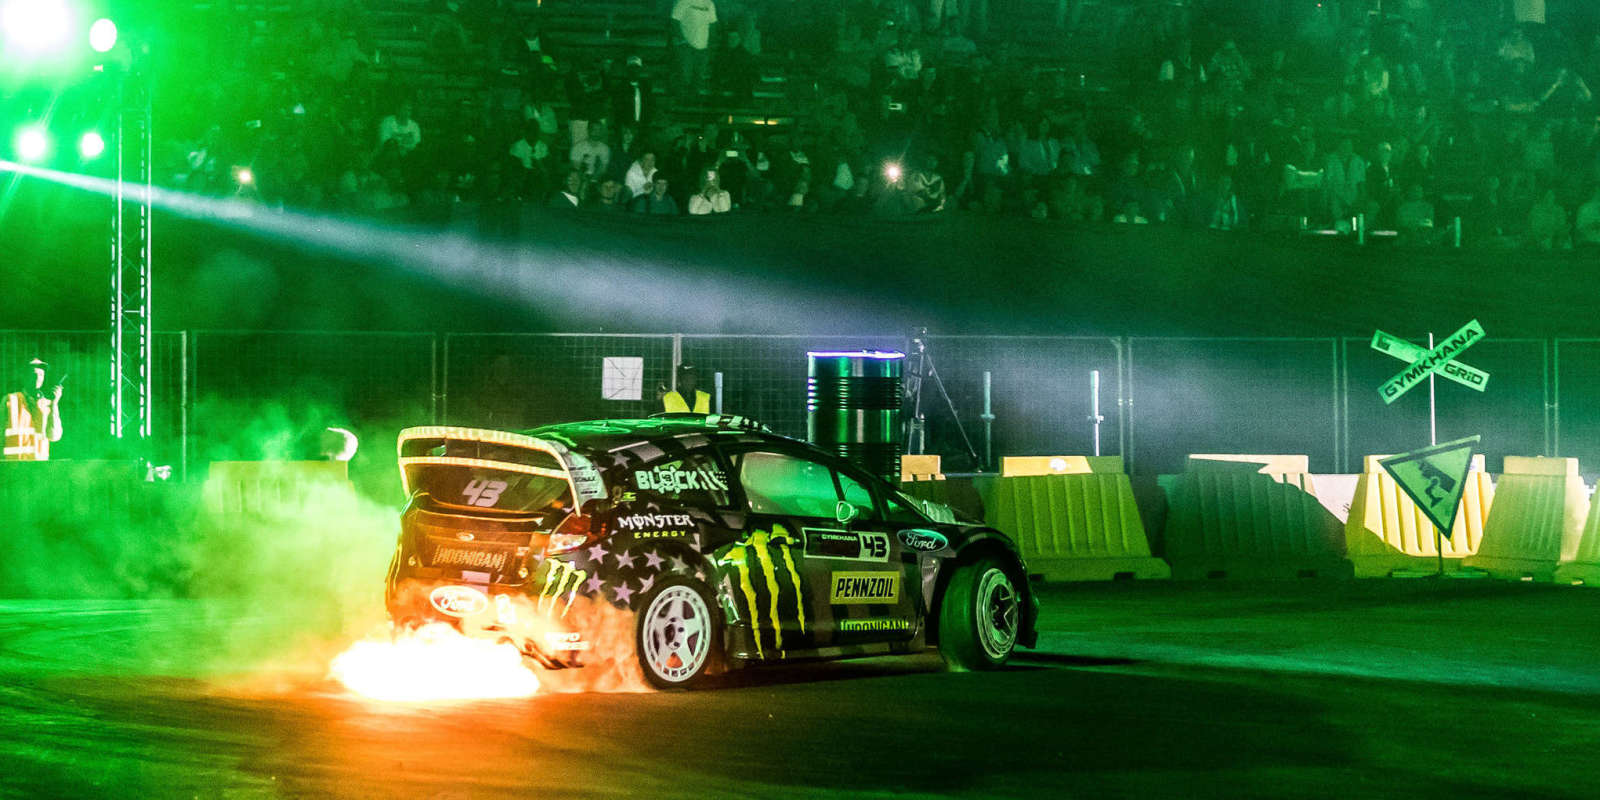 Shots from Saturday's Gymkhana grid qualifiers.